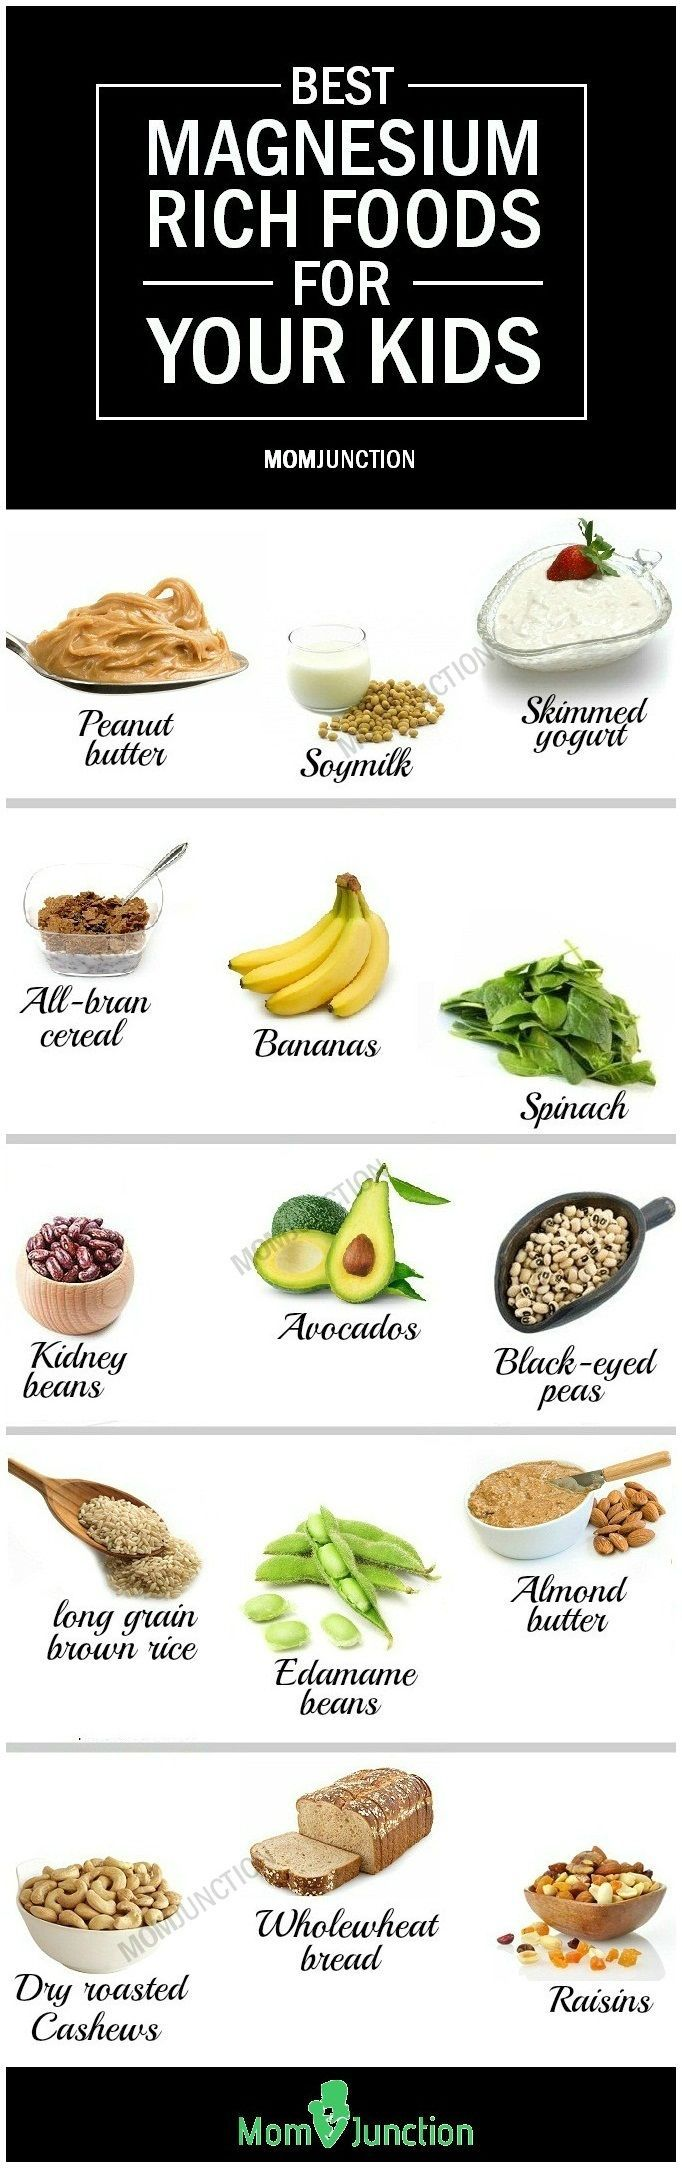 107 Best Images About Child Nutrition On Pinterest